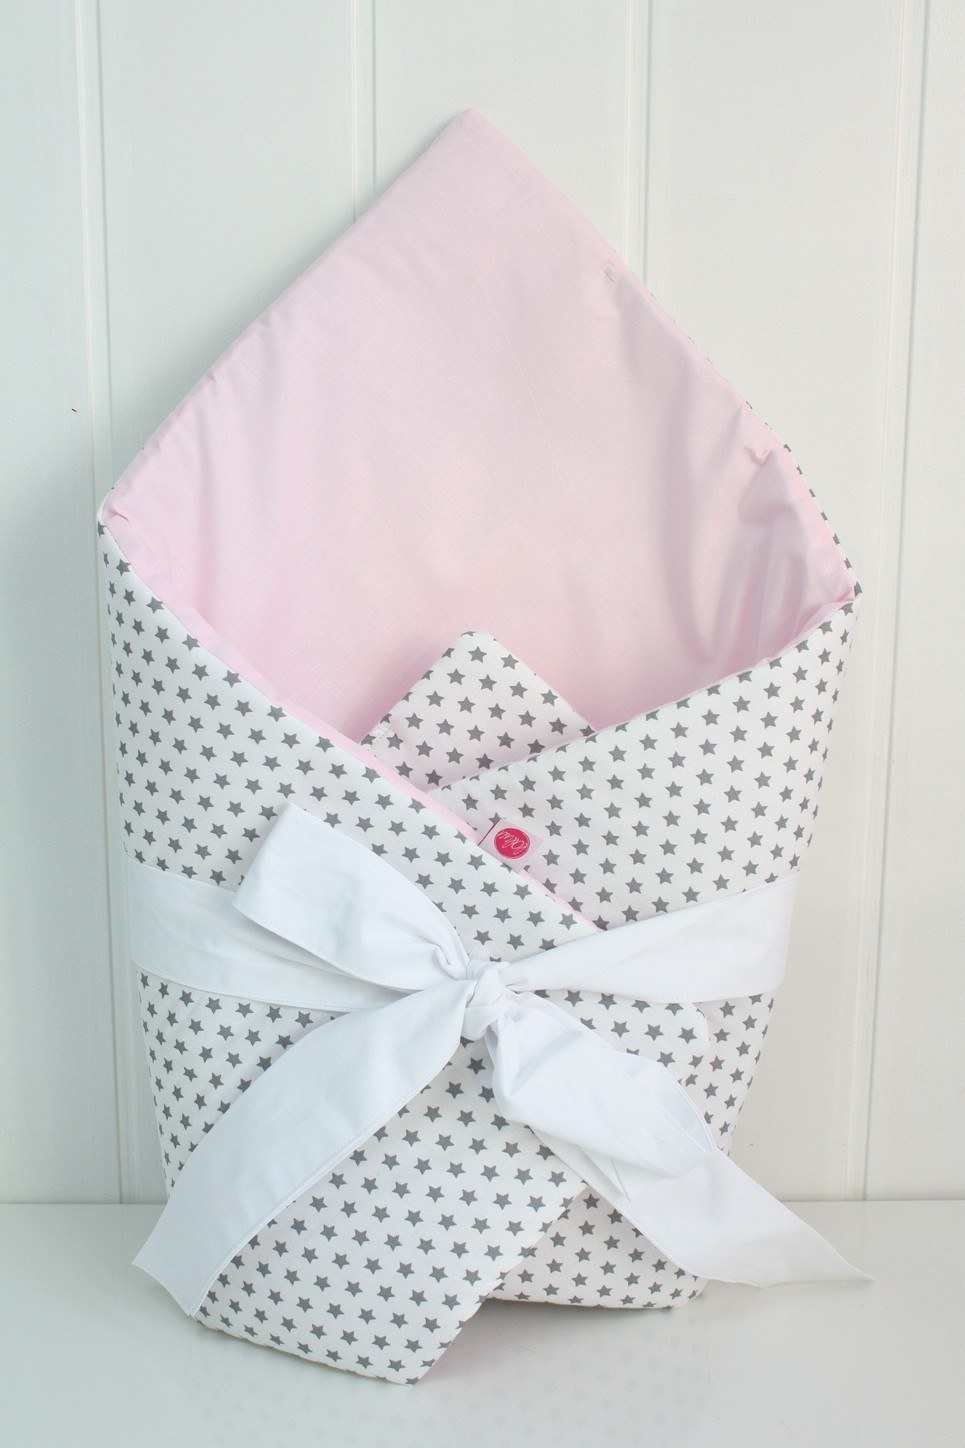 Stars On White And Light Pink Baby Horn With a Frill